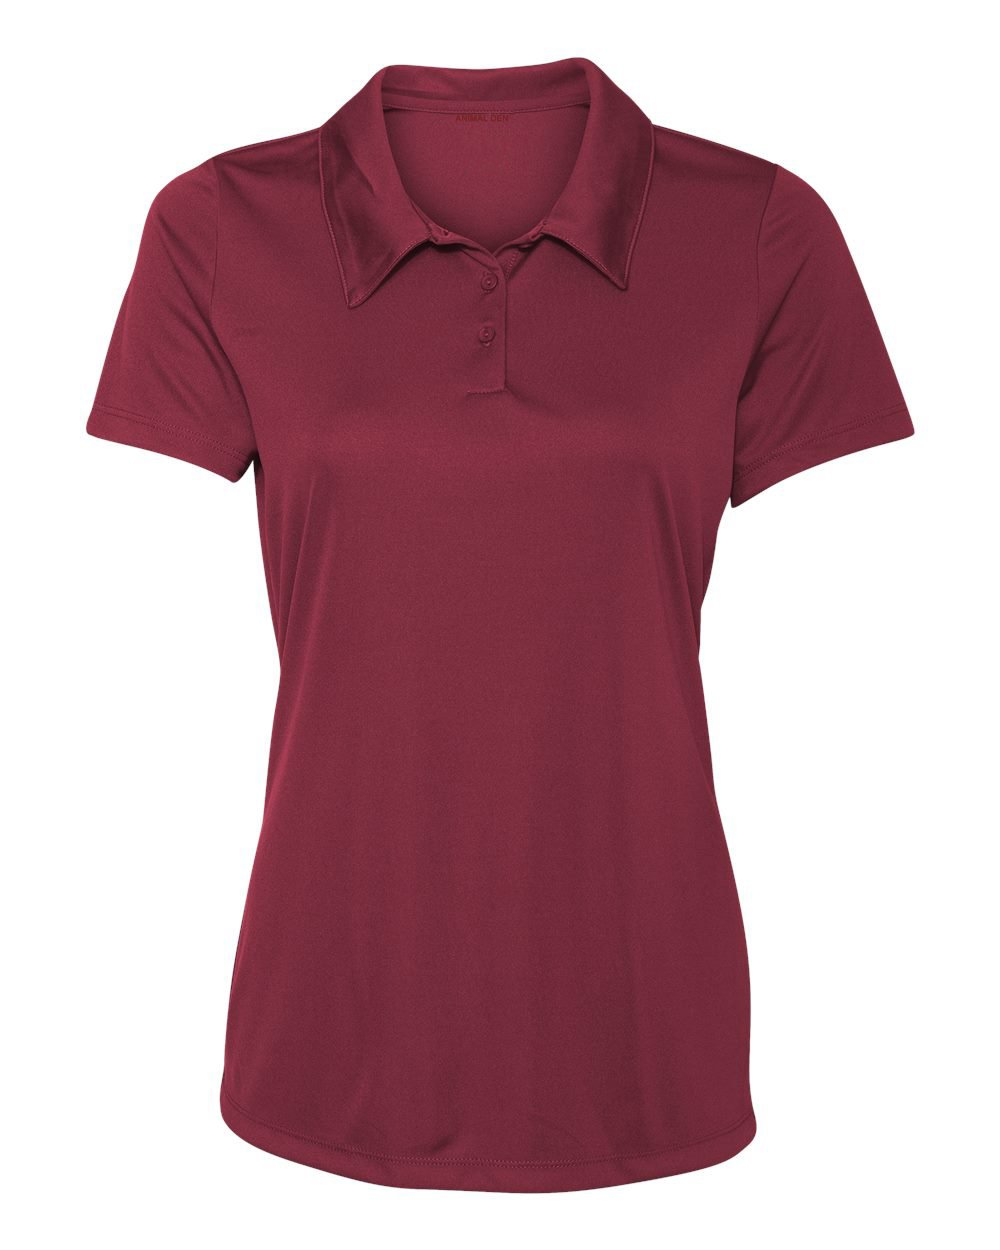 Women's Dry-Fit Golf Polo Shirts 3-Button Golf Polo's in 20 Colors XS-3XL Shirt MAROON-XS